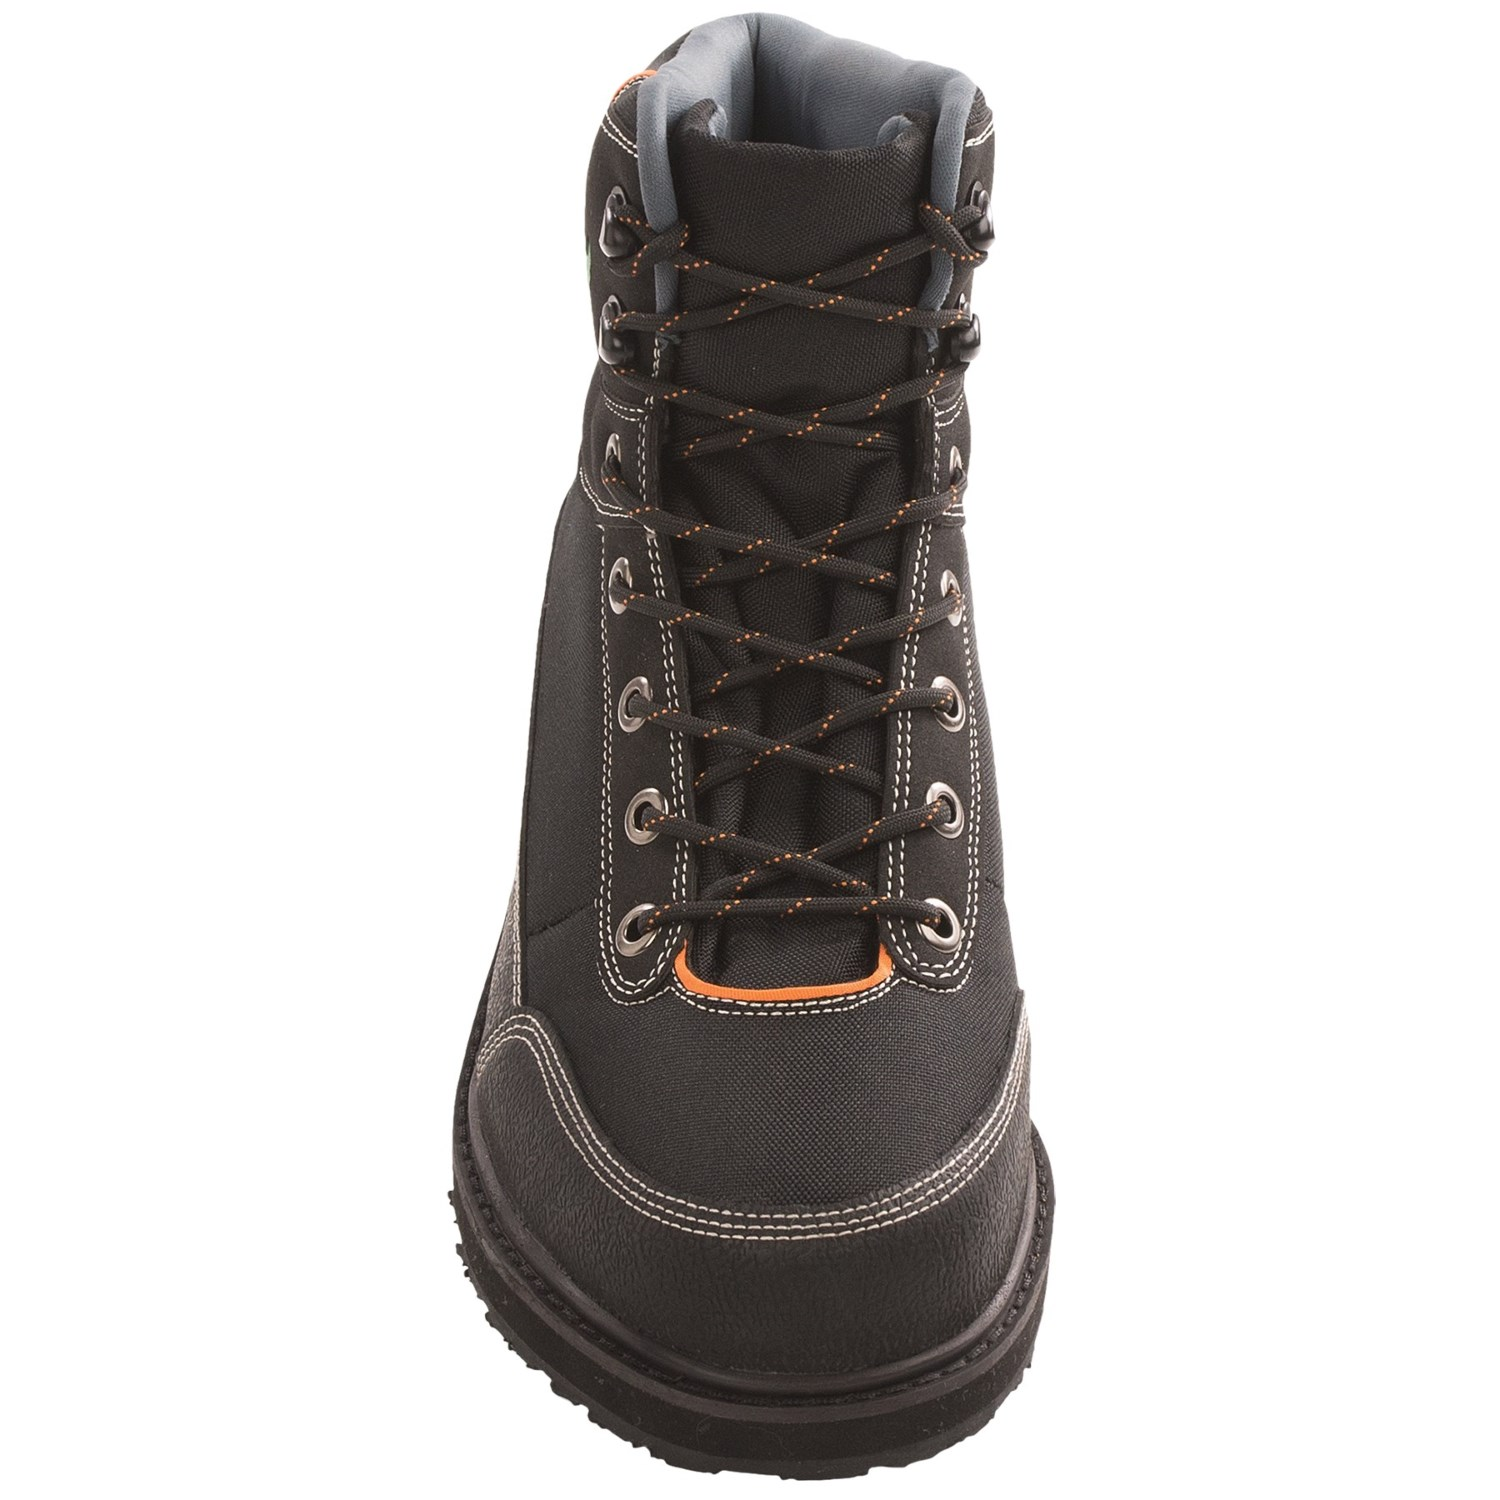 Wading Boots For 28 Images Simms Vaportread 174 Wading